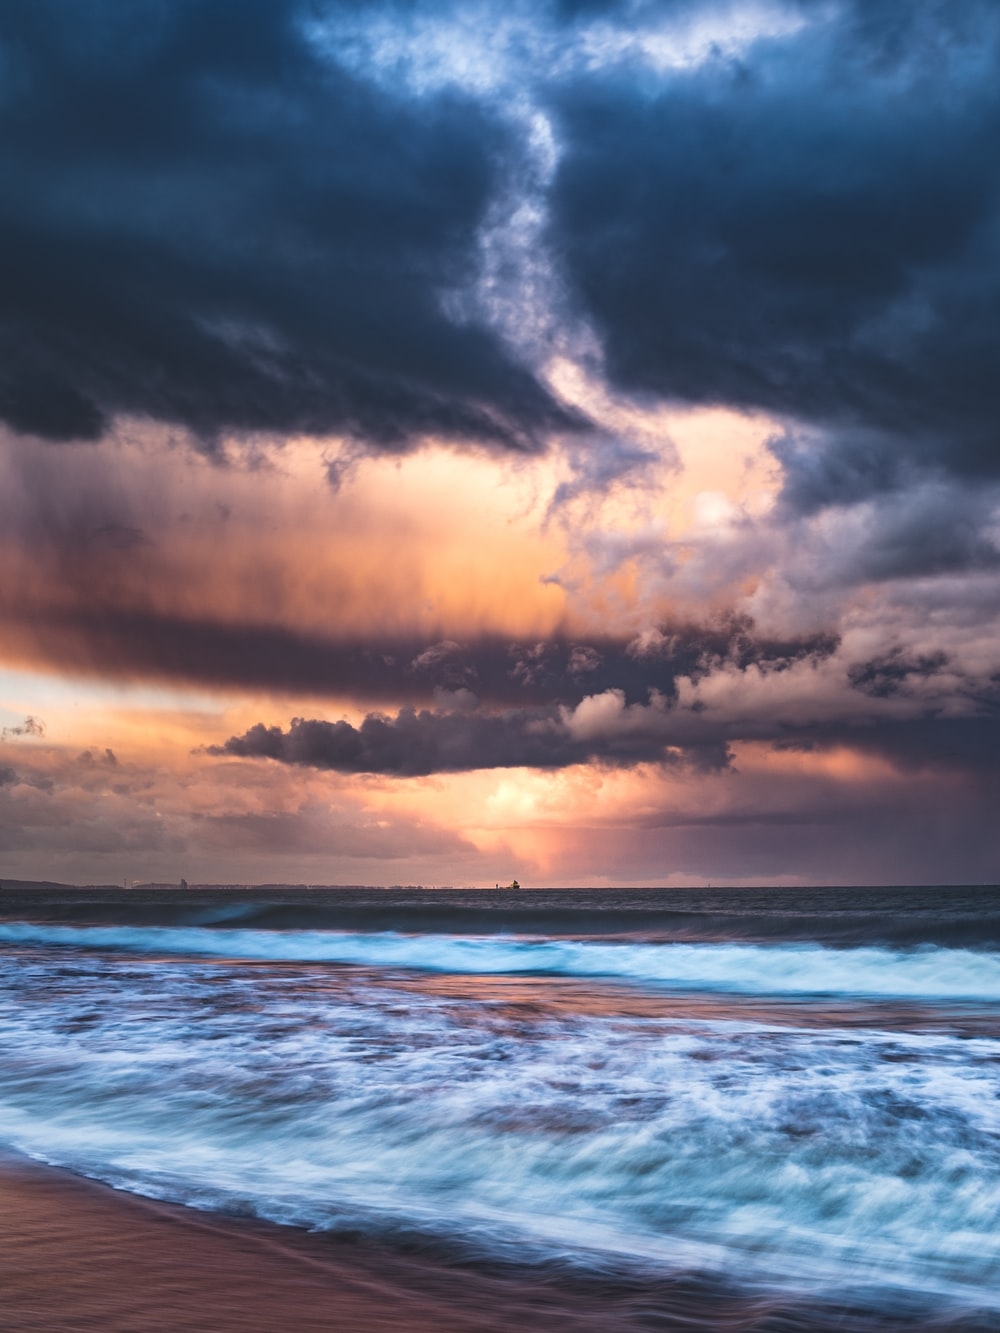 ocean waves under cloudy sky during daytime